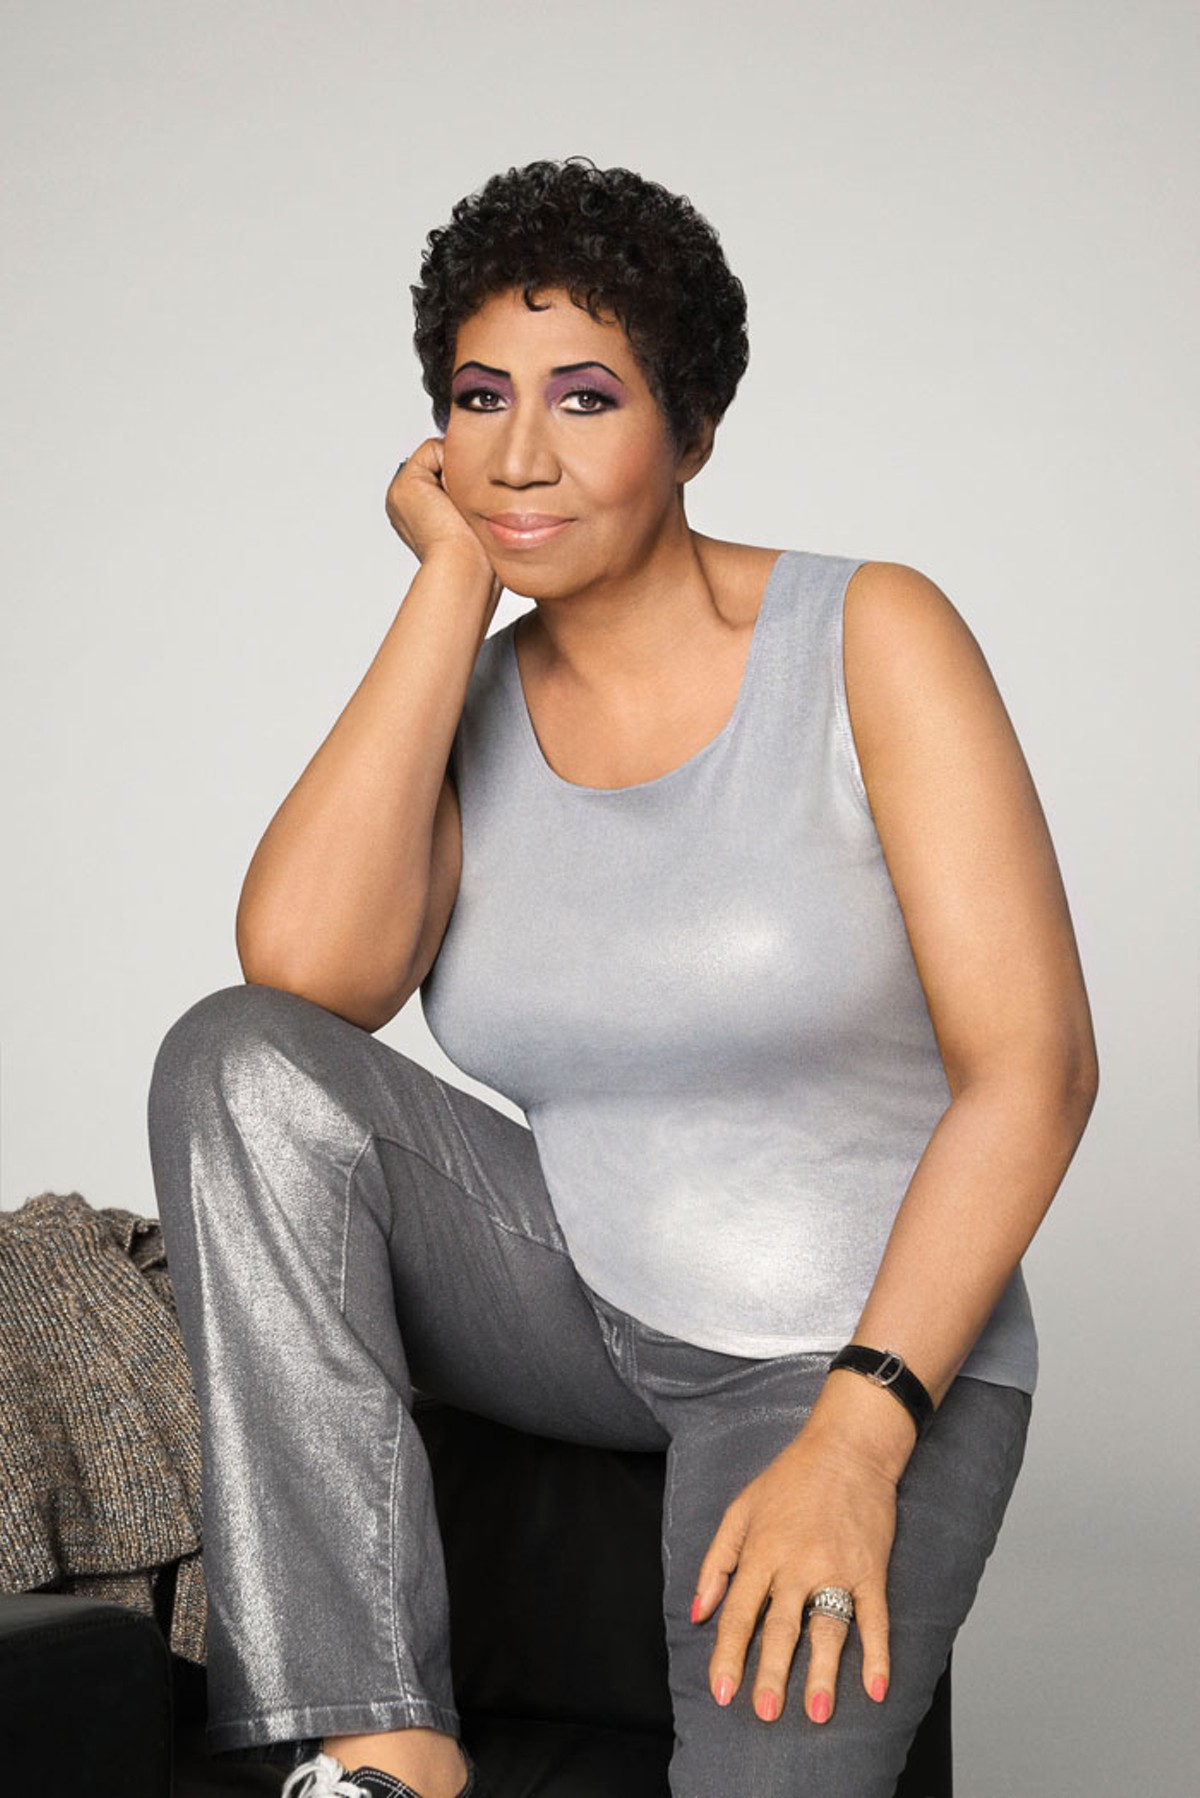 aretha_franklin_2014official_phot_0-2.jpg